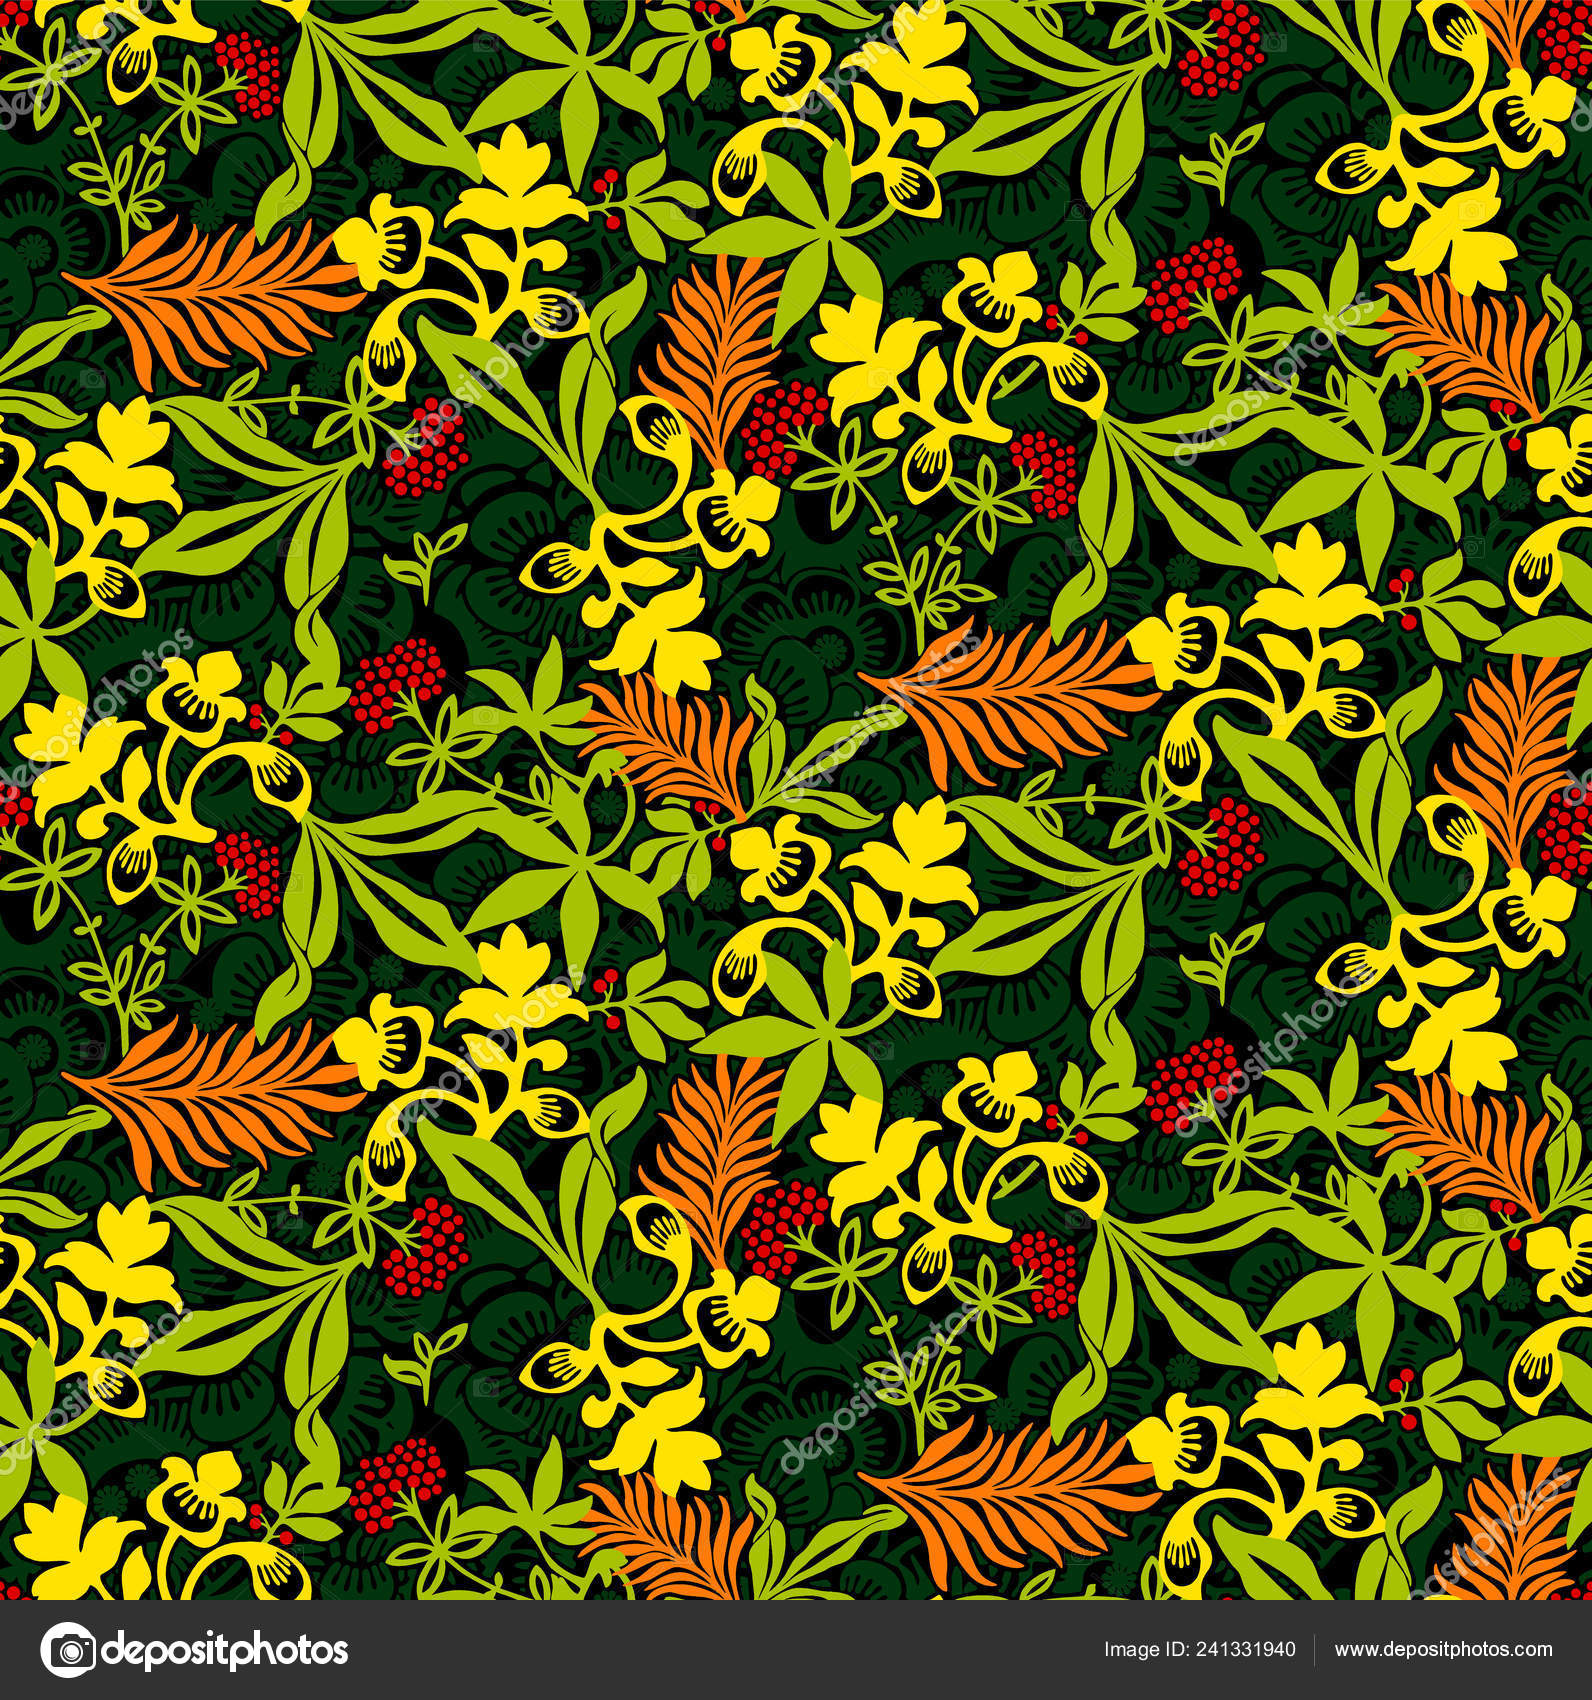 Dark Floral Seamless Wallpaper Tropical Leaves Yellow Flowers Flat